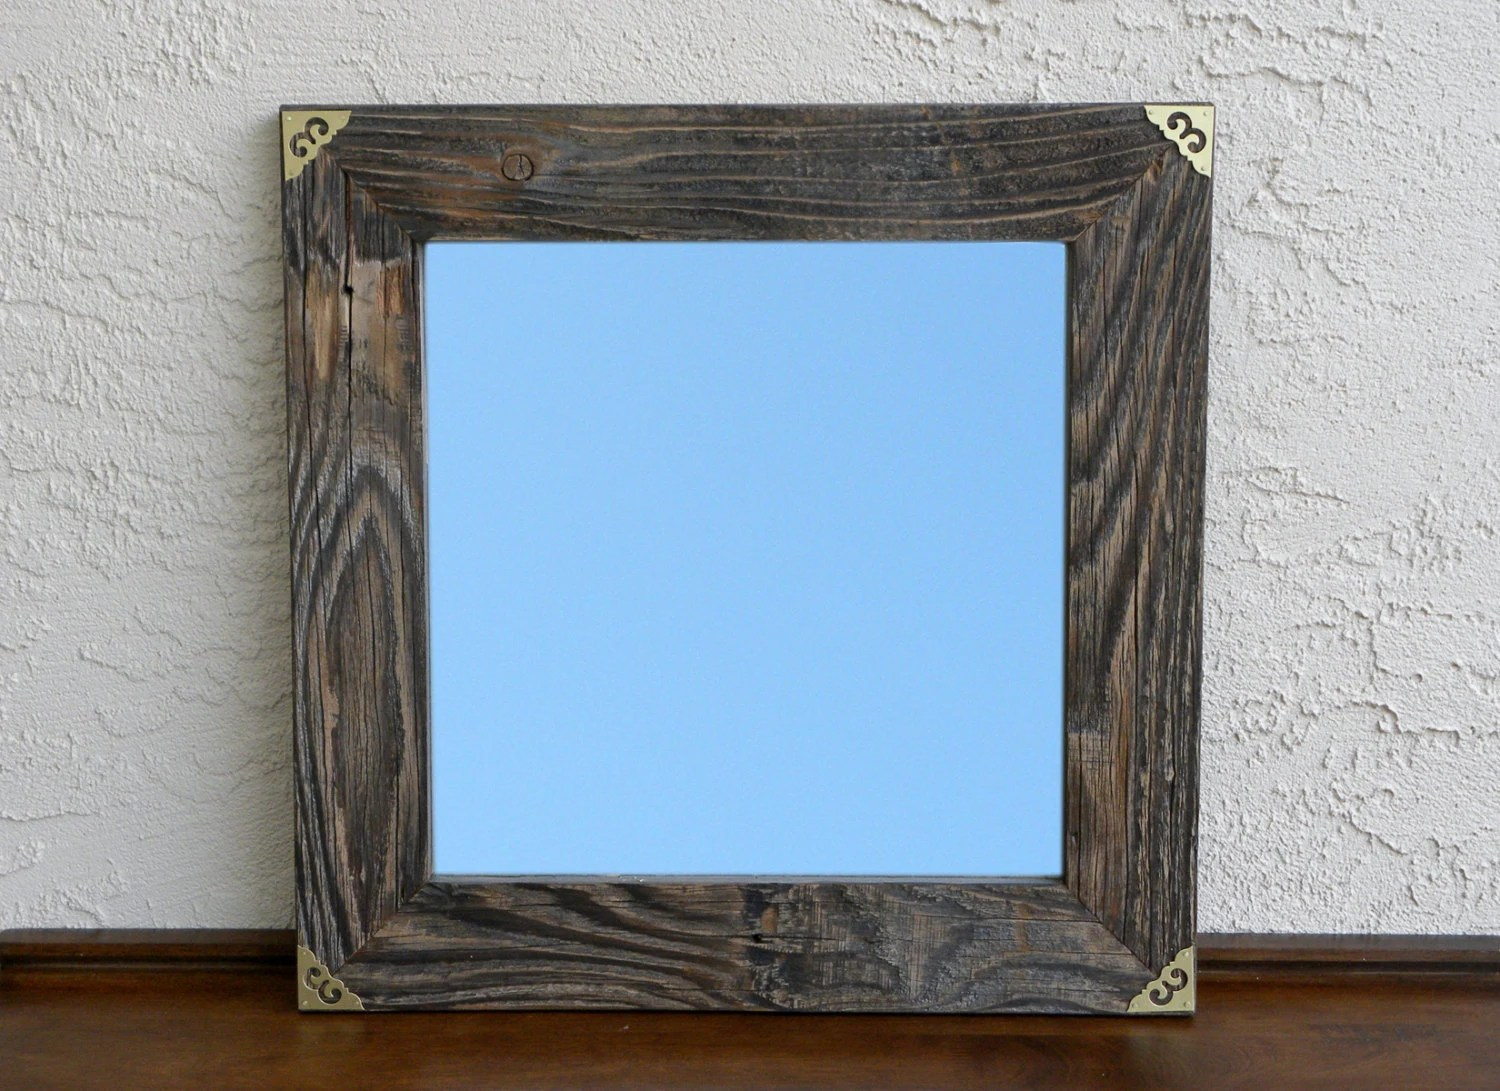 Reclaimed Wood Mirror With Gold Metal Corners. Rustic Home